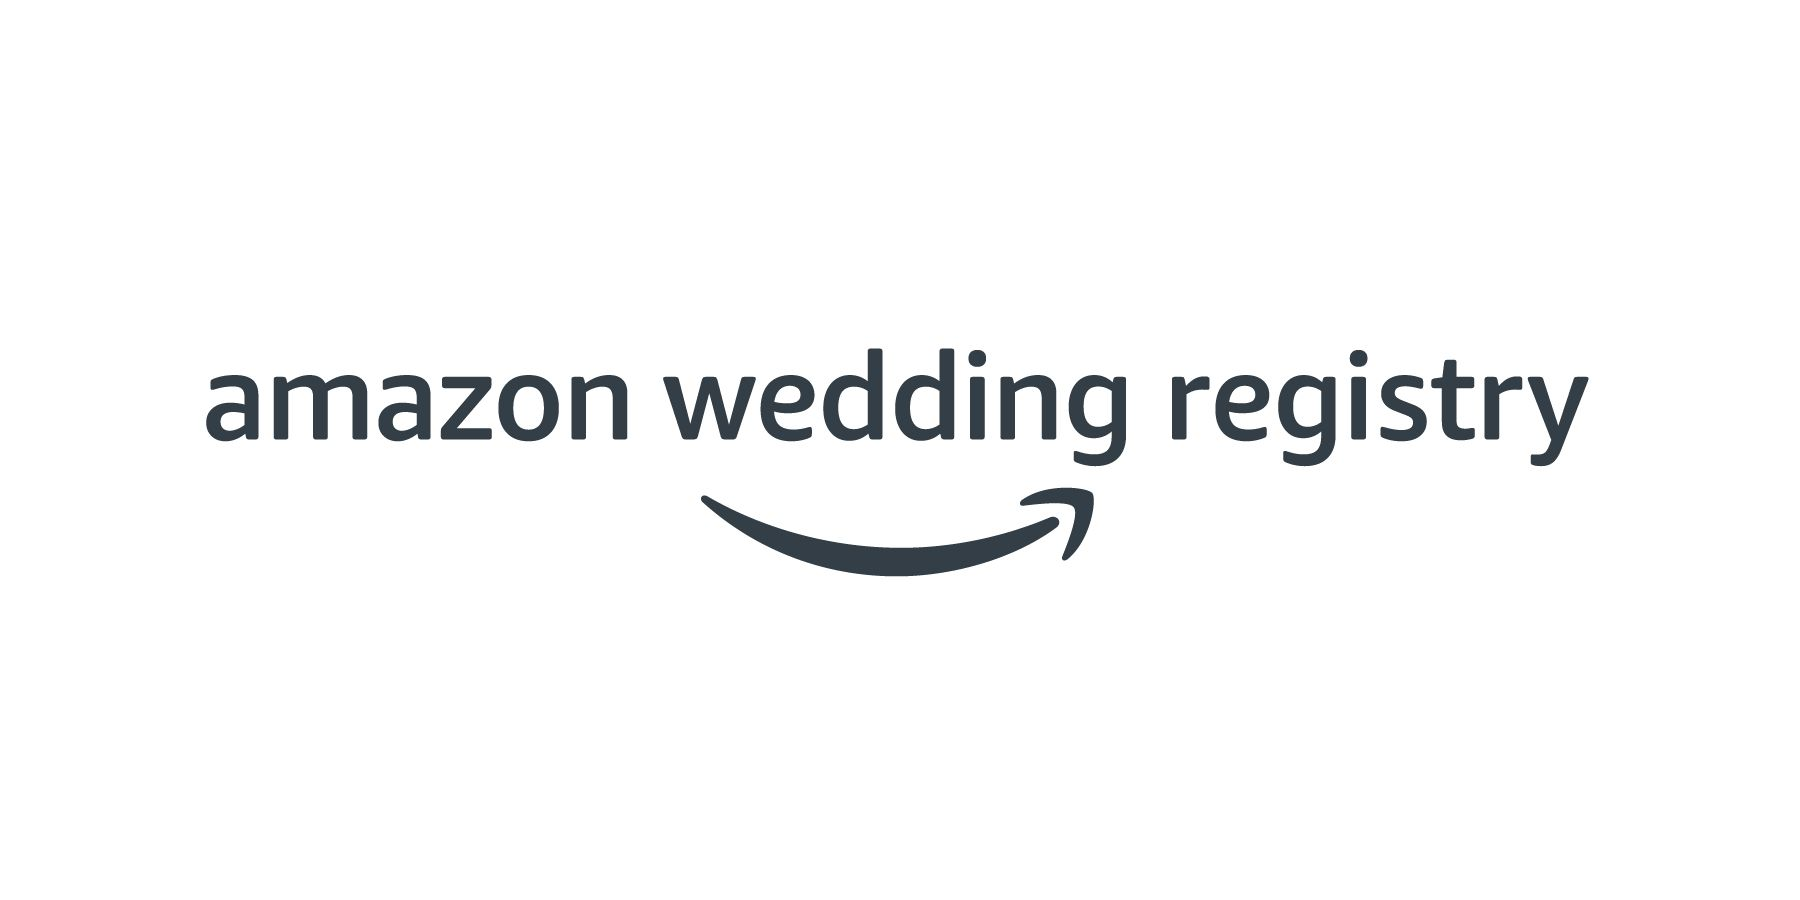 Amazon Wedding Registry Amazon Wedding Registry Wedding Registry Womens Fashion Trends